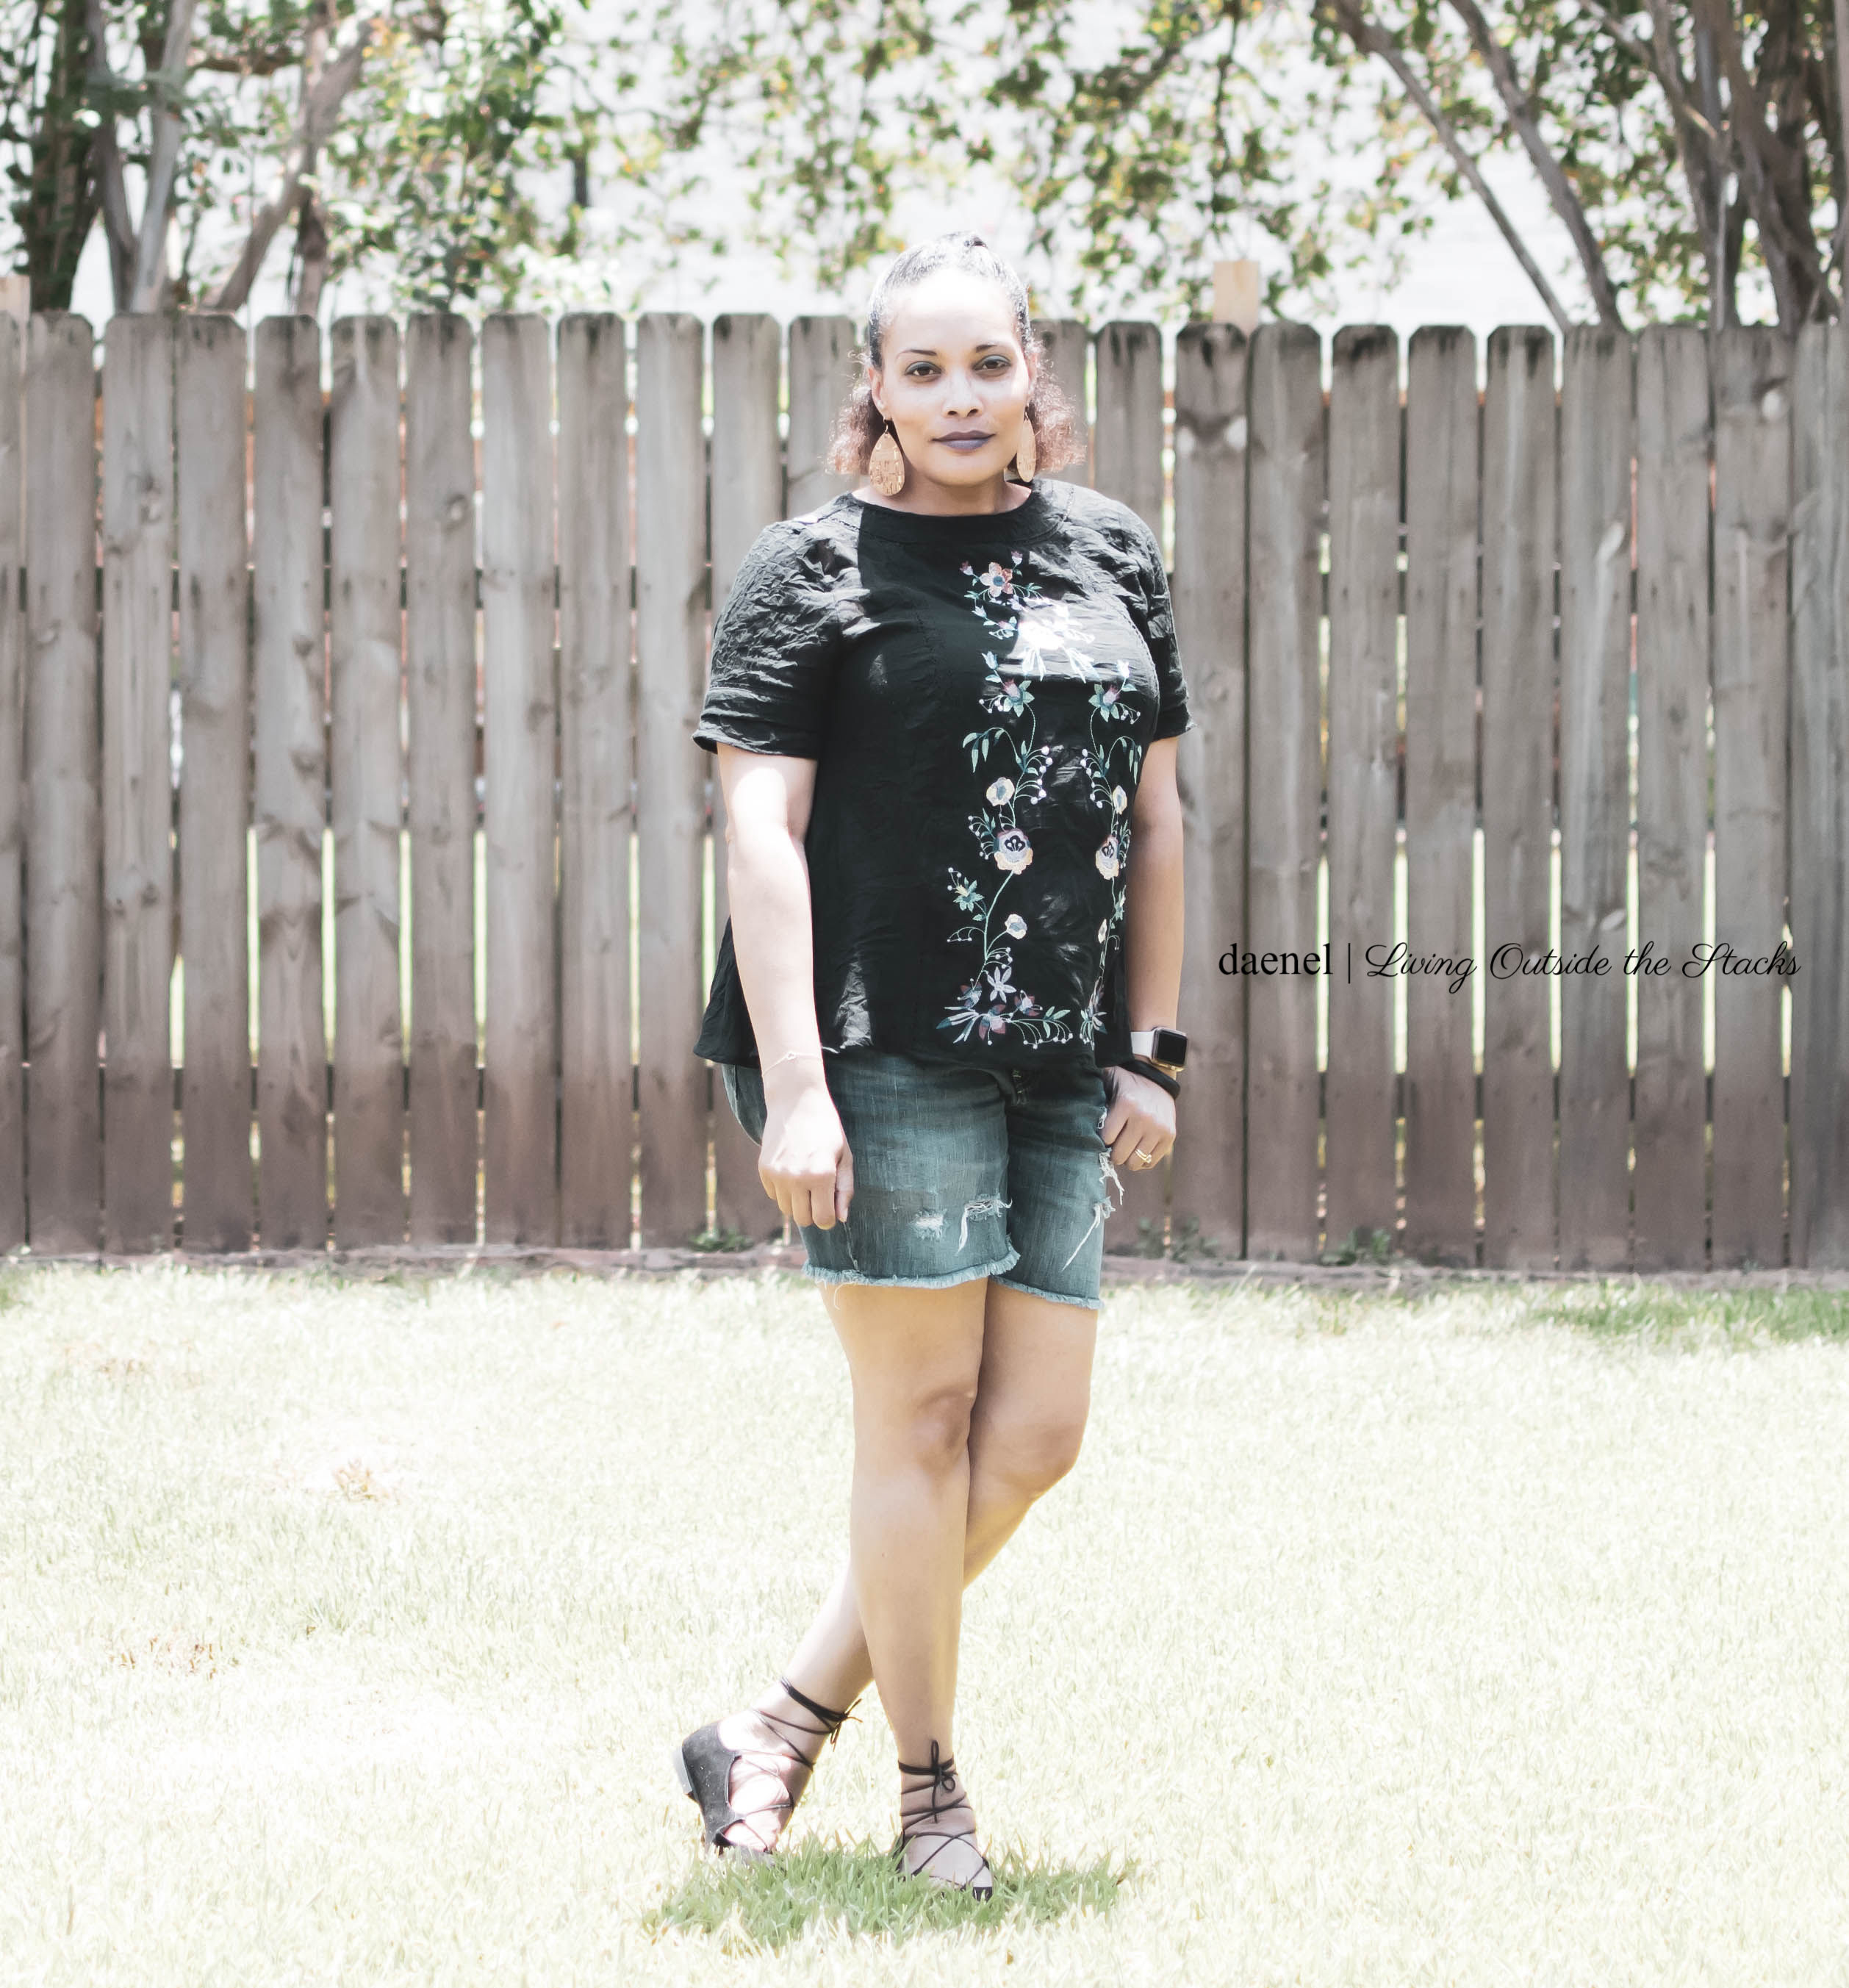 Embroidered Top and Loved In Jeans {living outside the stacks}